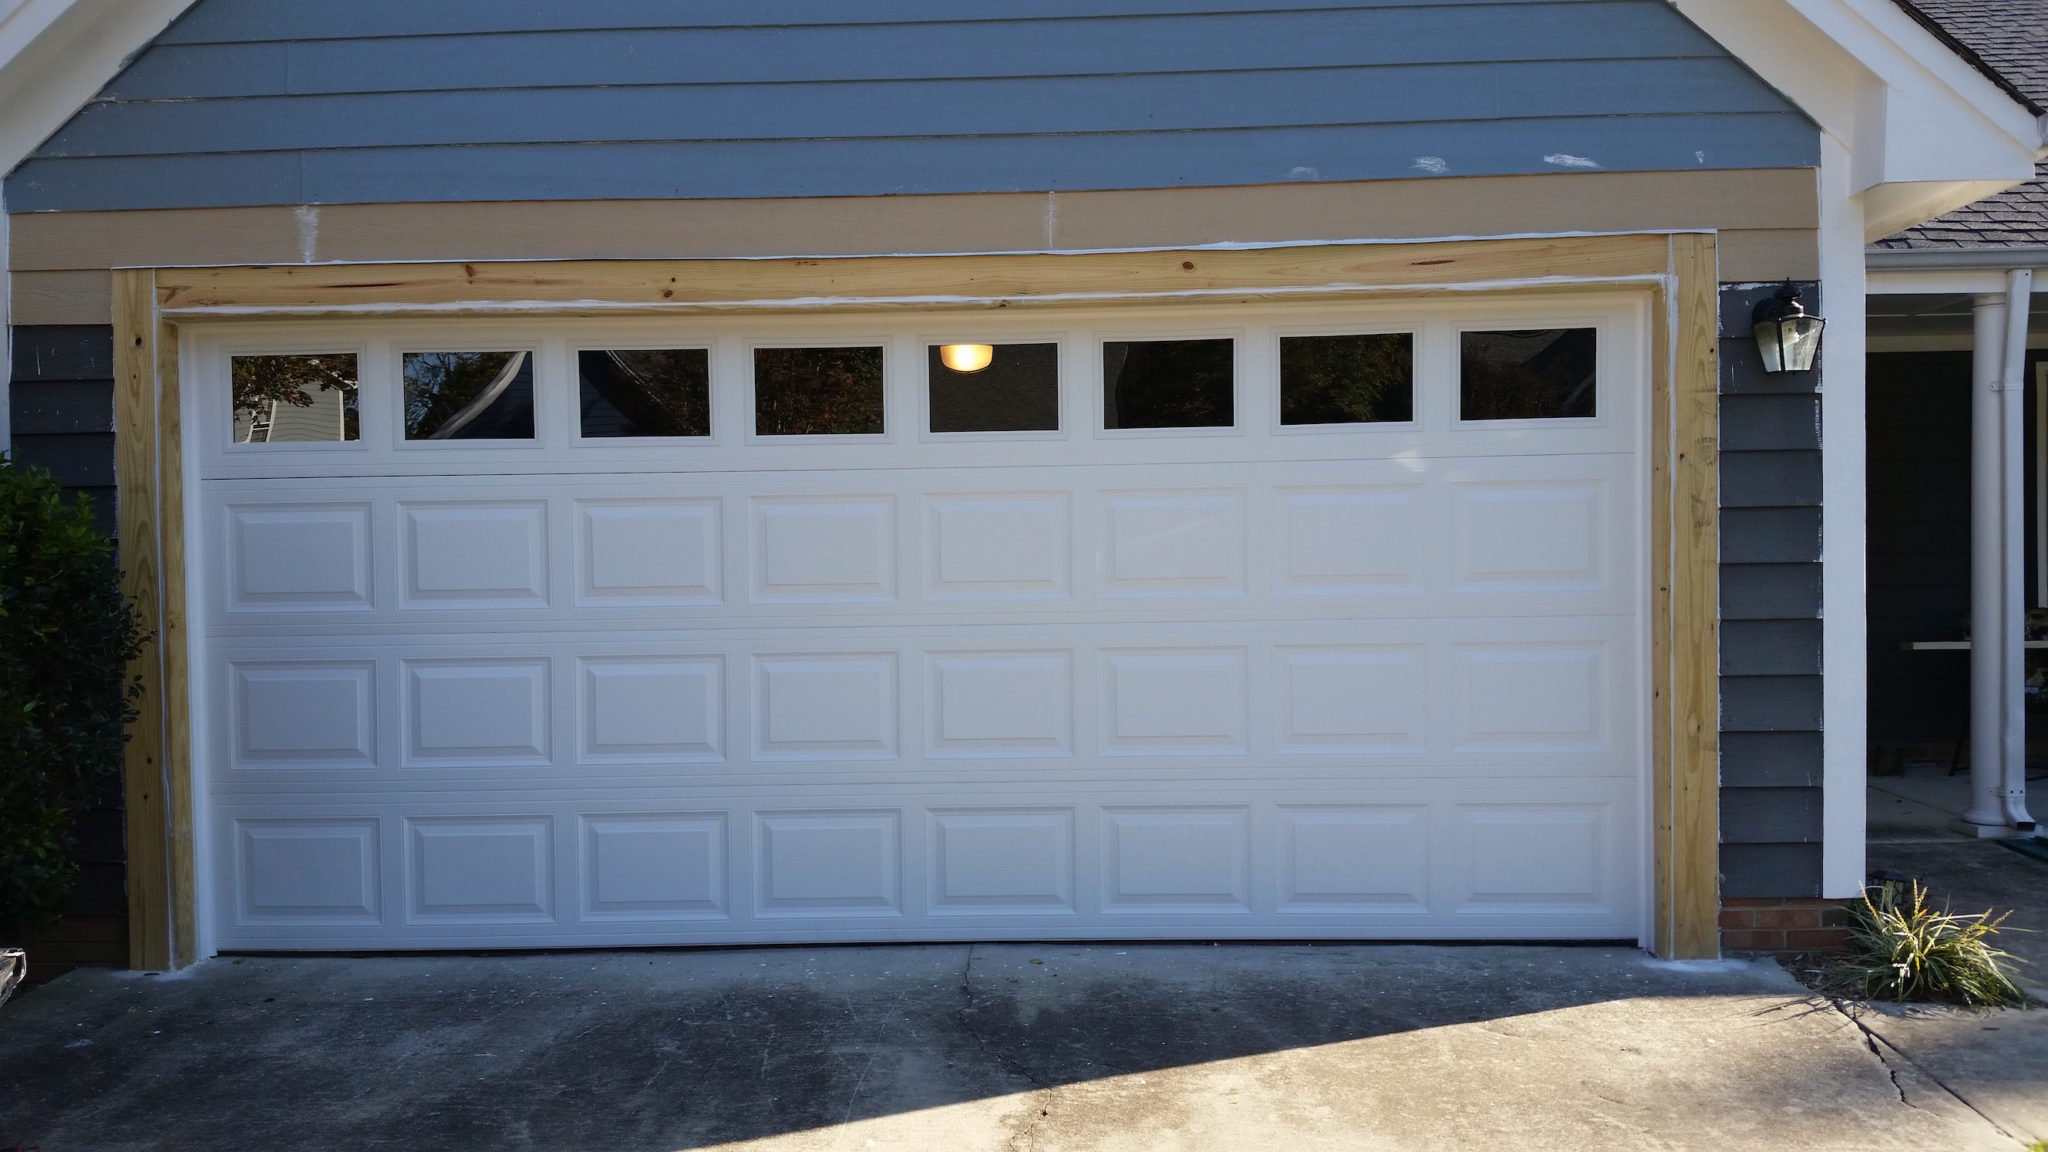 South charlotte residential garage door framing repair for Garage side door and frame